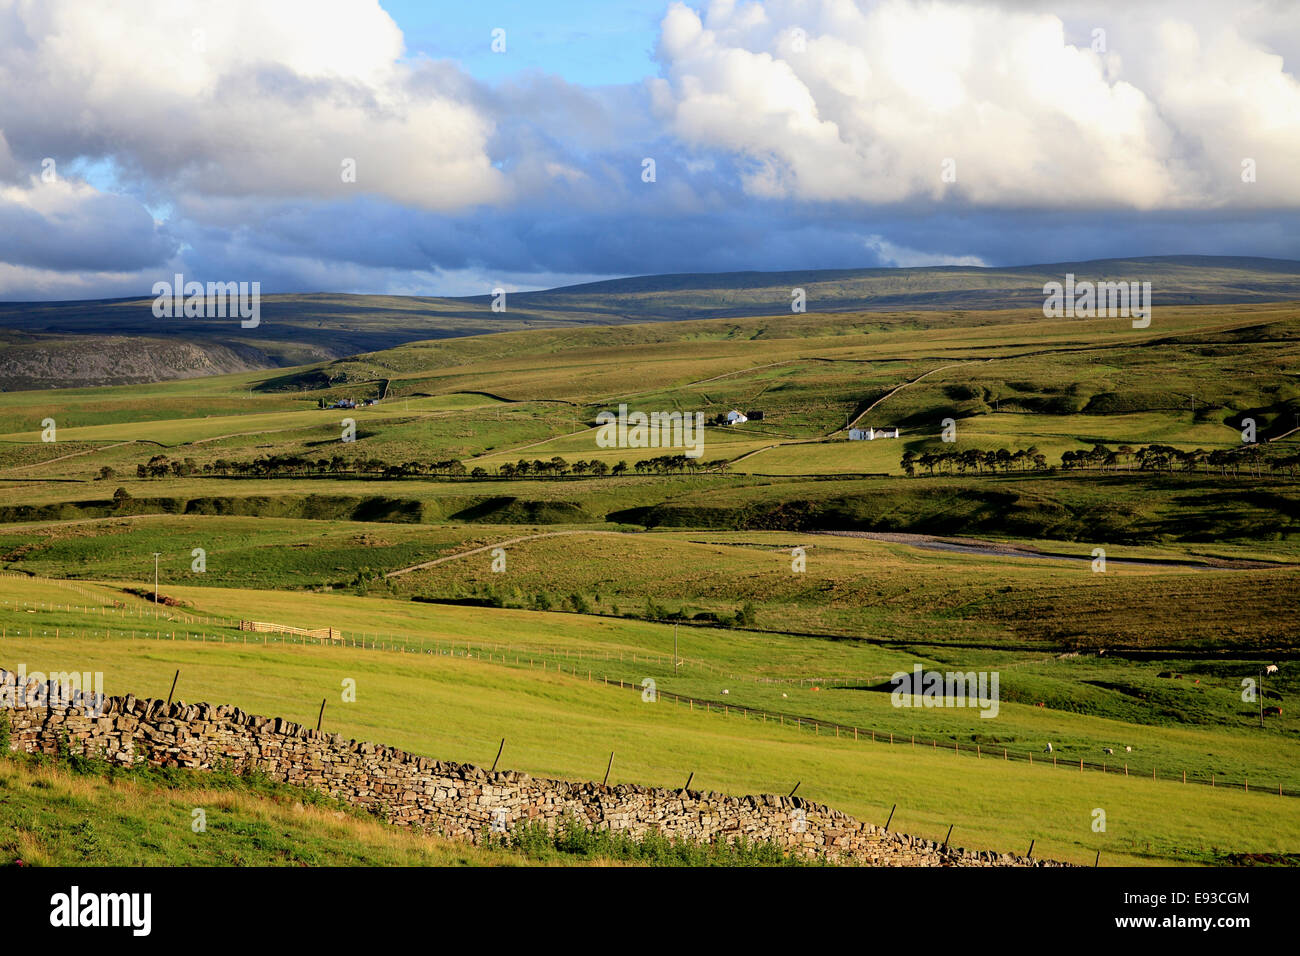 3238. Upper Teesdale, Durham, UK - Stock Image